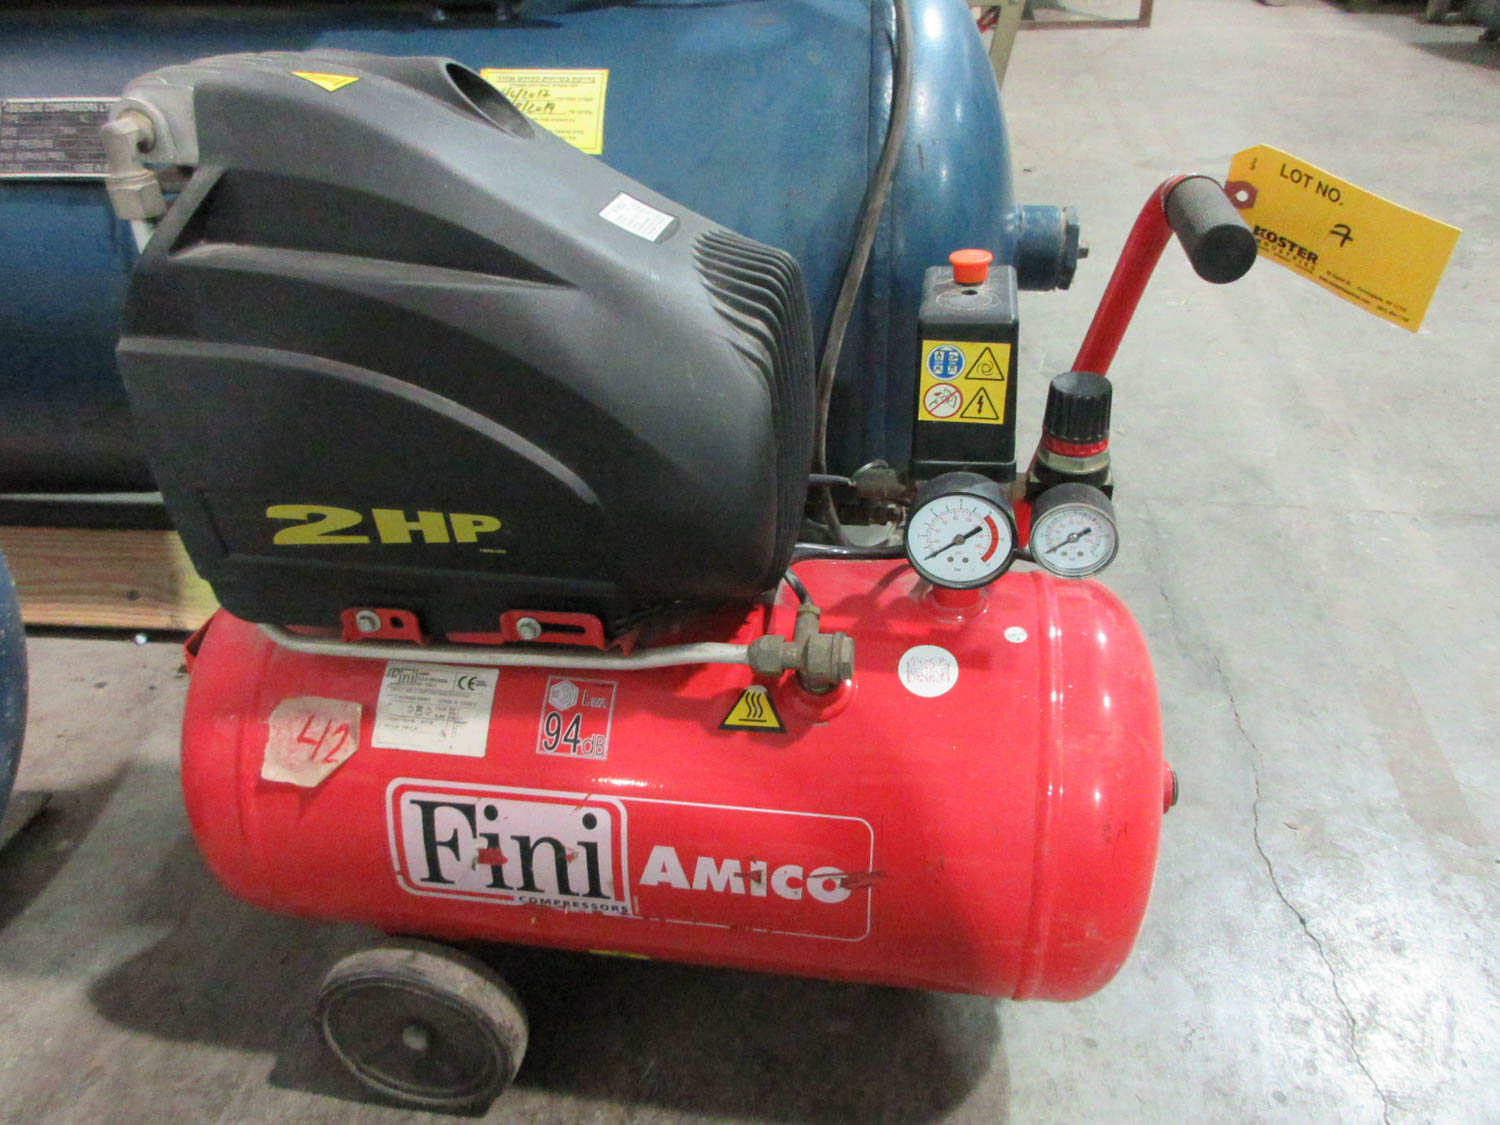 Lot 7 - FINI MDL. E.C AMICO 25/SF2500 AIR COMPRESSOR; PORTABLE; HORIZONTAL; 2 HORSEPOWER, S/N: N/A [A#42][